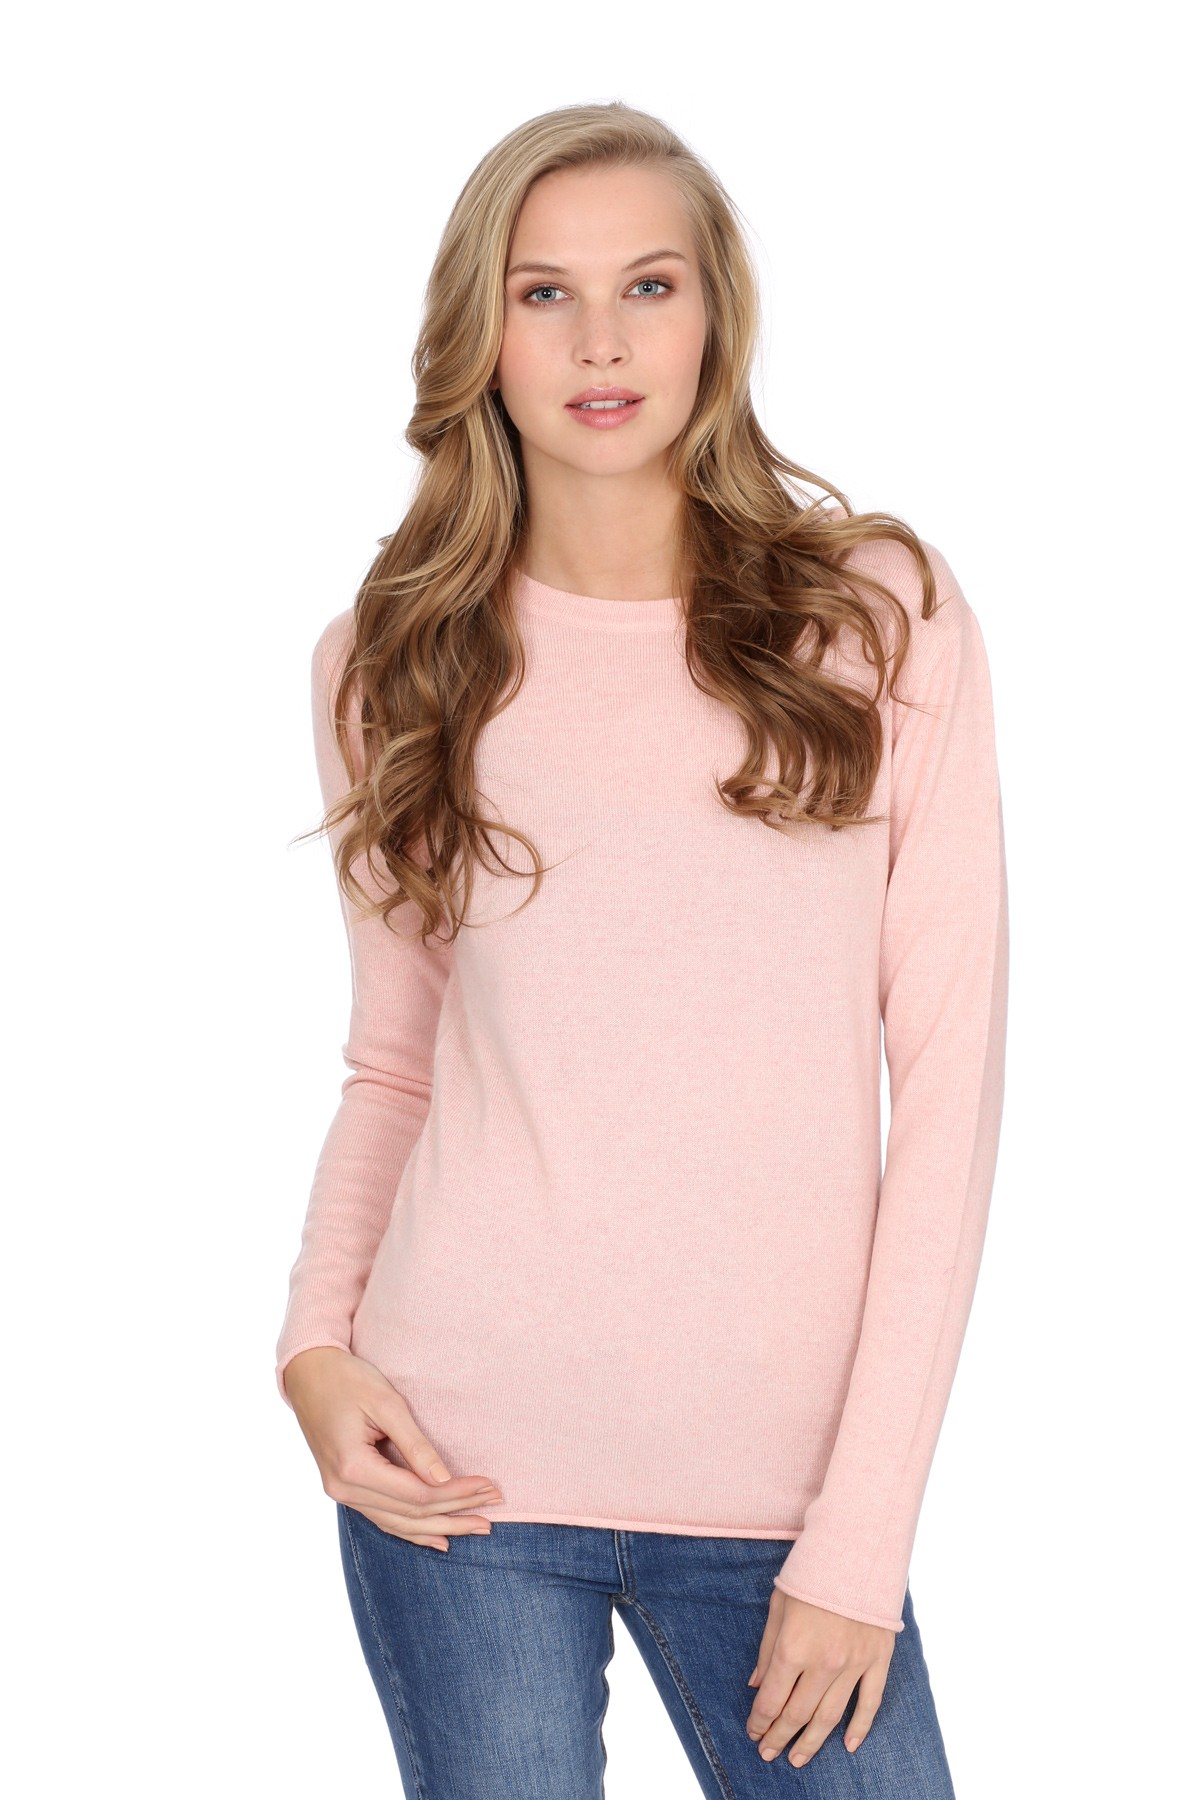 Women's long sleeve cashmere top baby pink